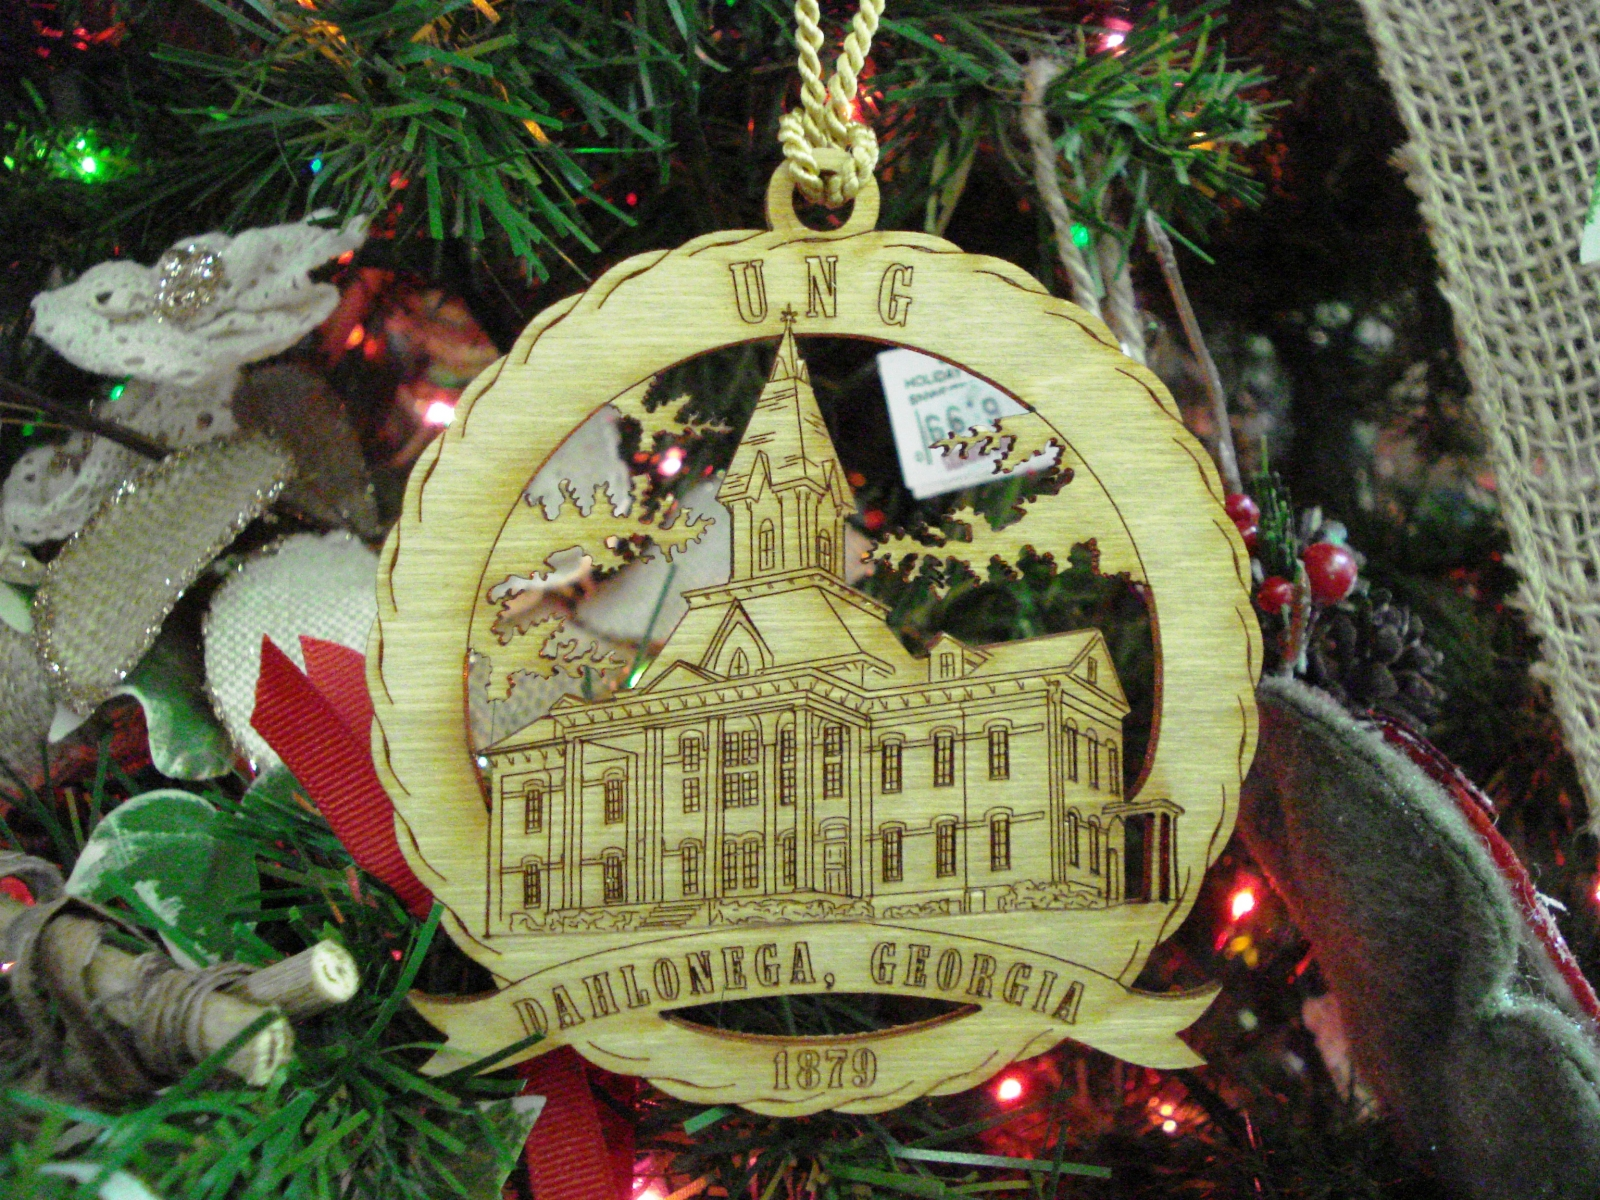 University Of North Georgia Souvenir Ornament Cranberry Corners